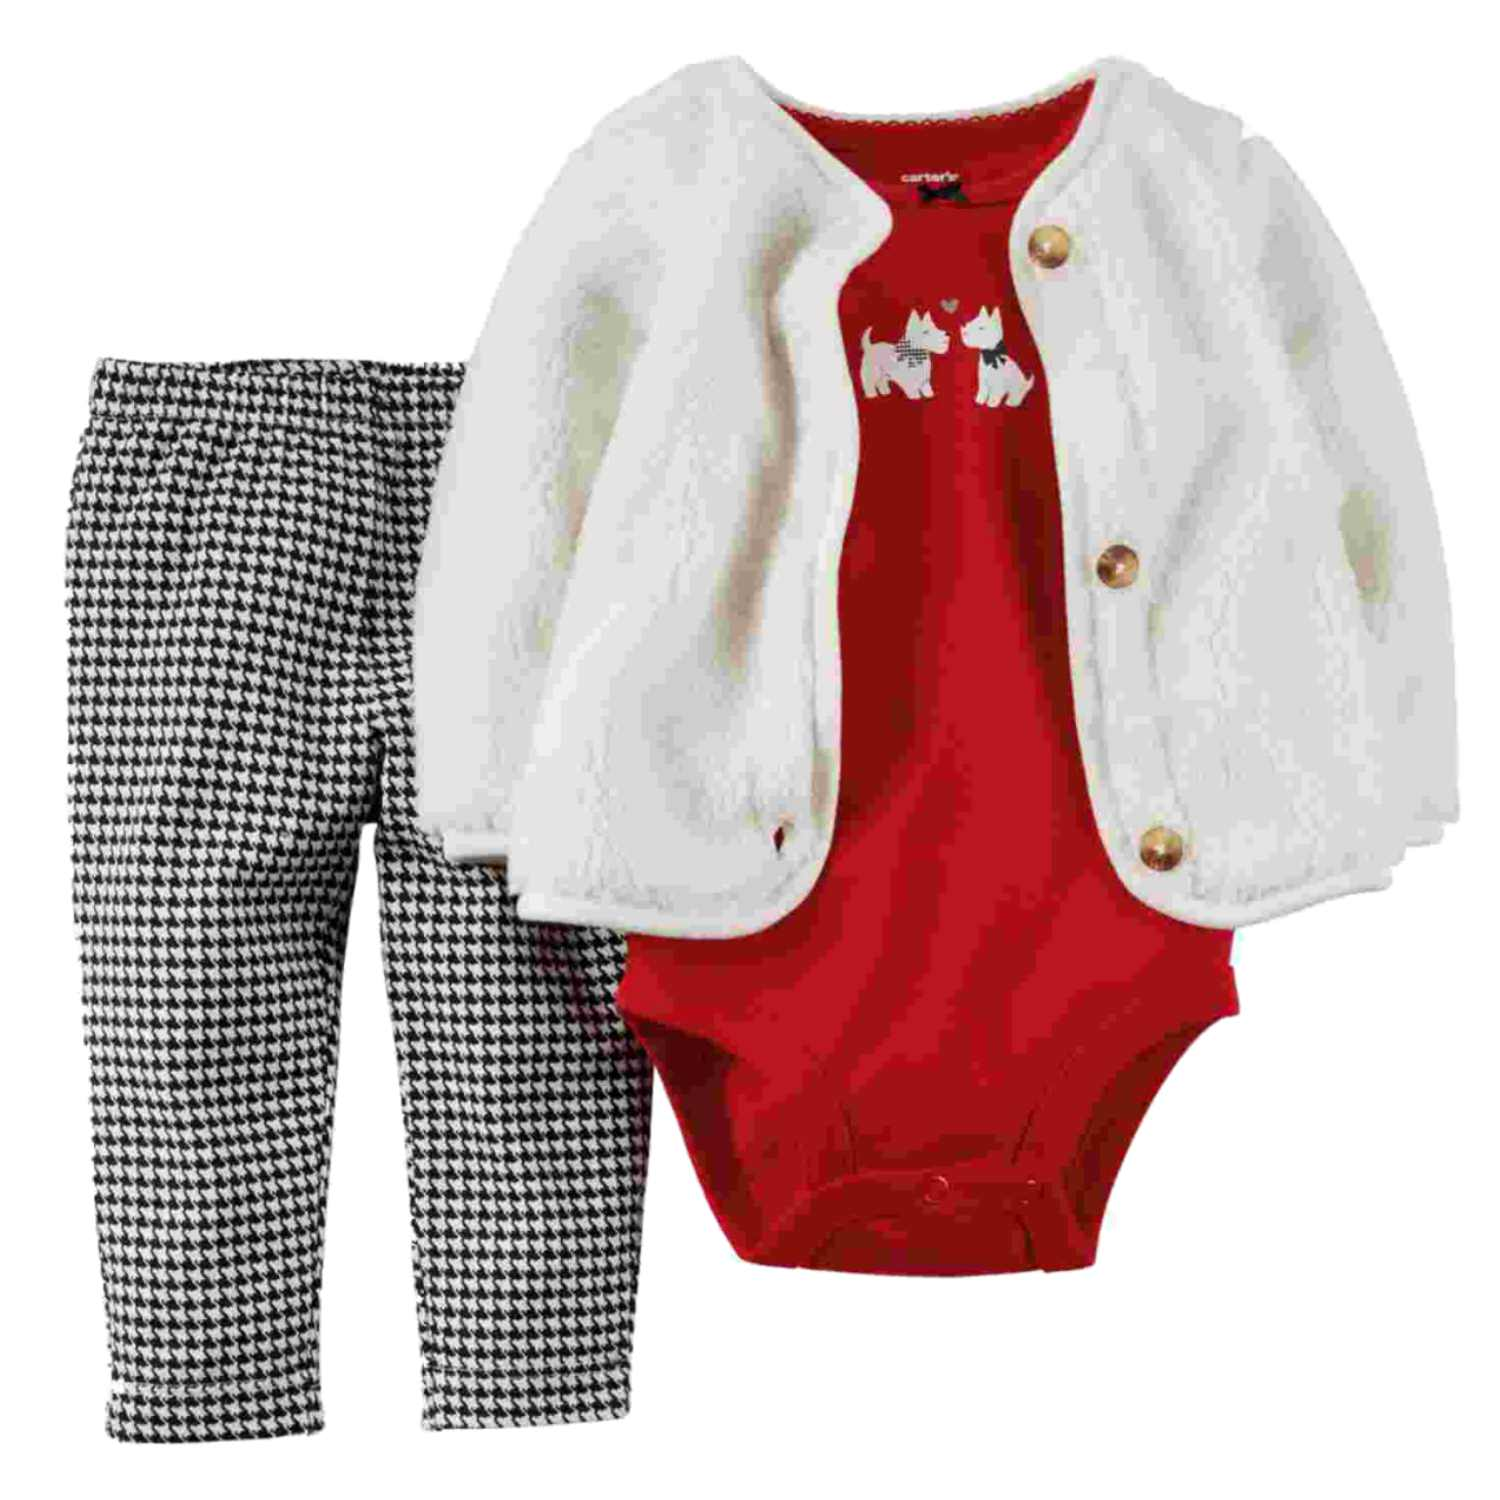 Carters Infant Girls 3 Piece Scotty Dog Set Plush Jacket Shirt & Leggings Set